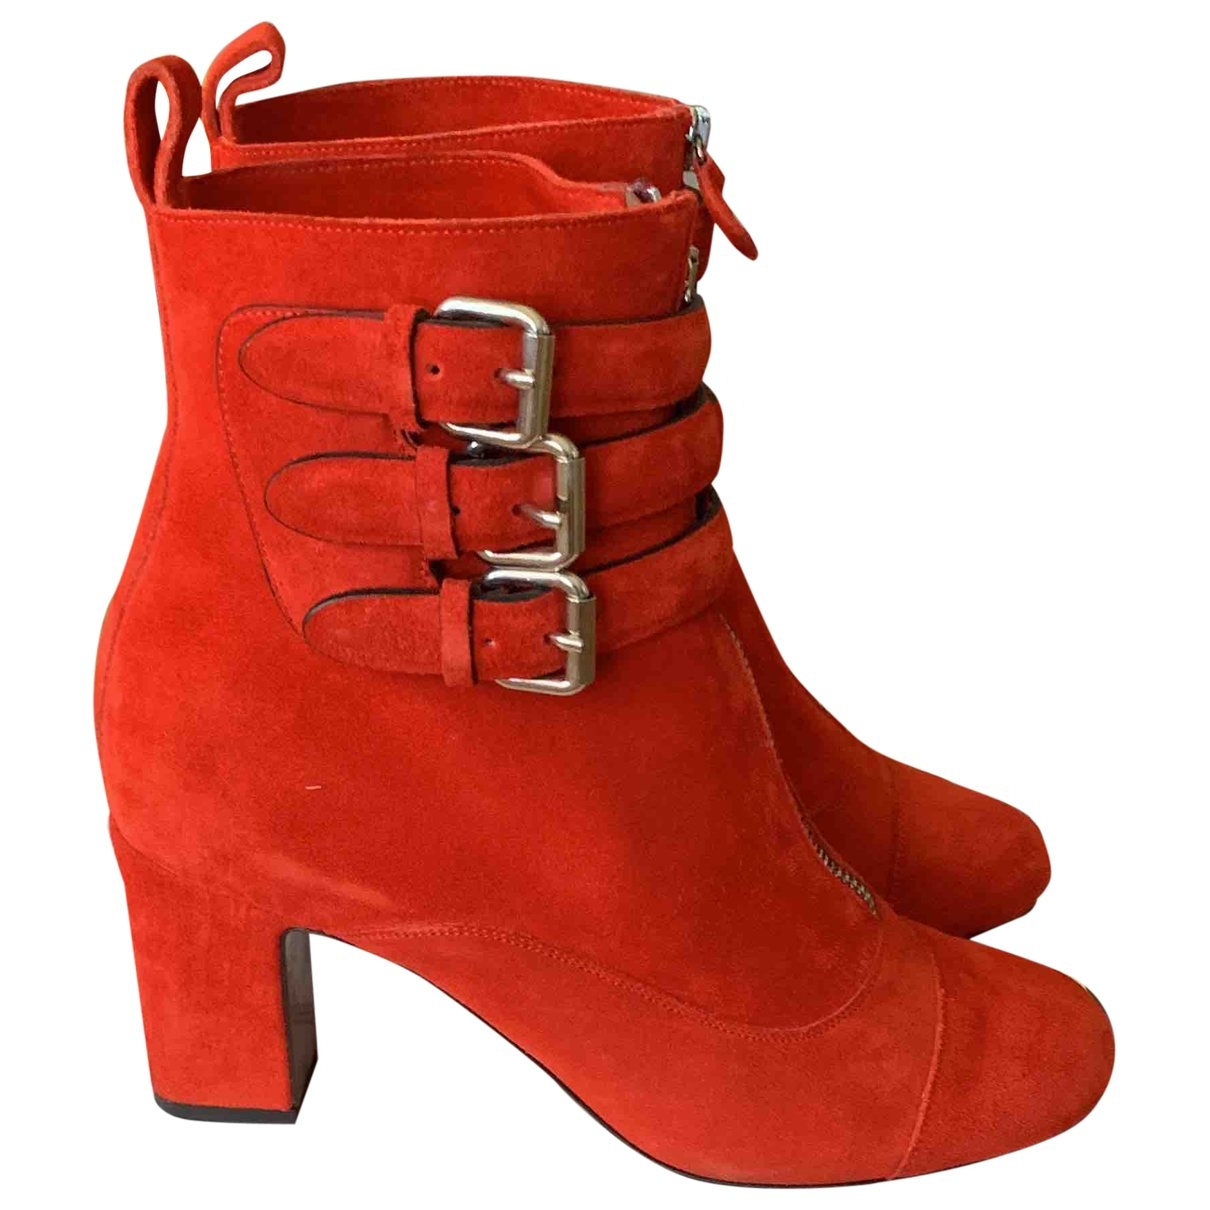 Tabitha Simmons \N Red Suede Ankle boots for Women 37.5 EU